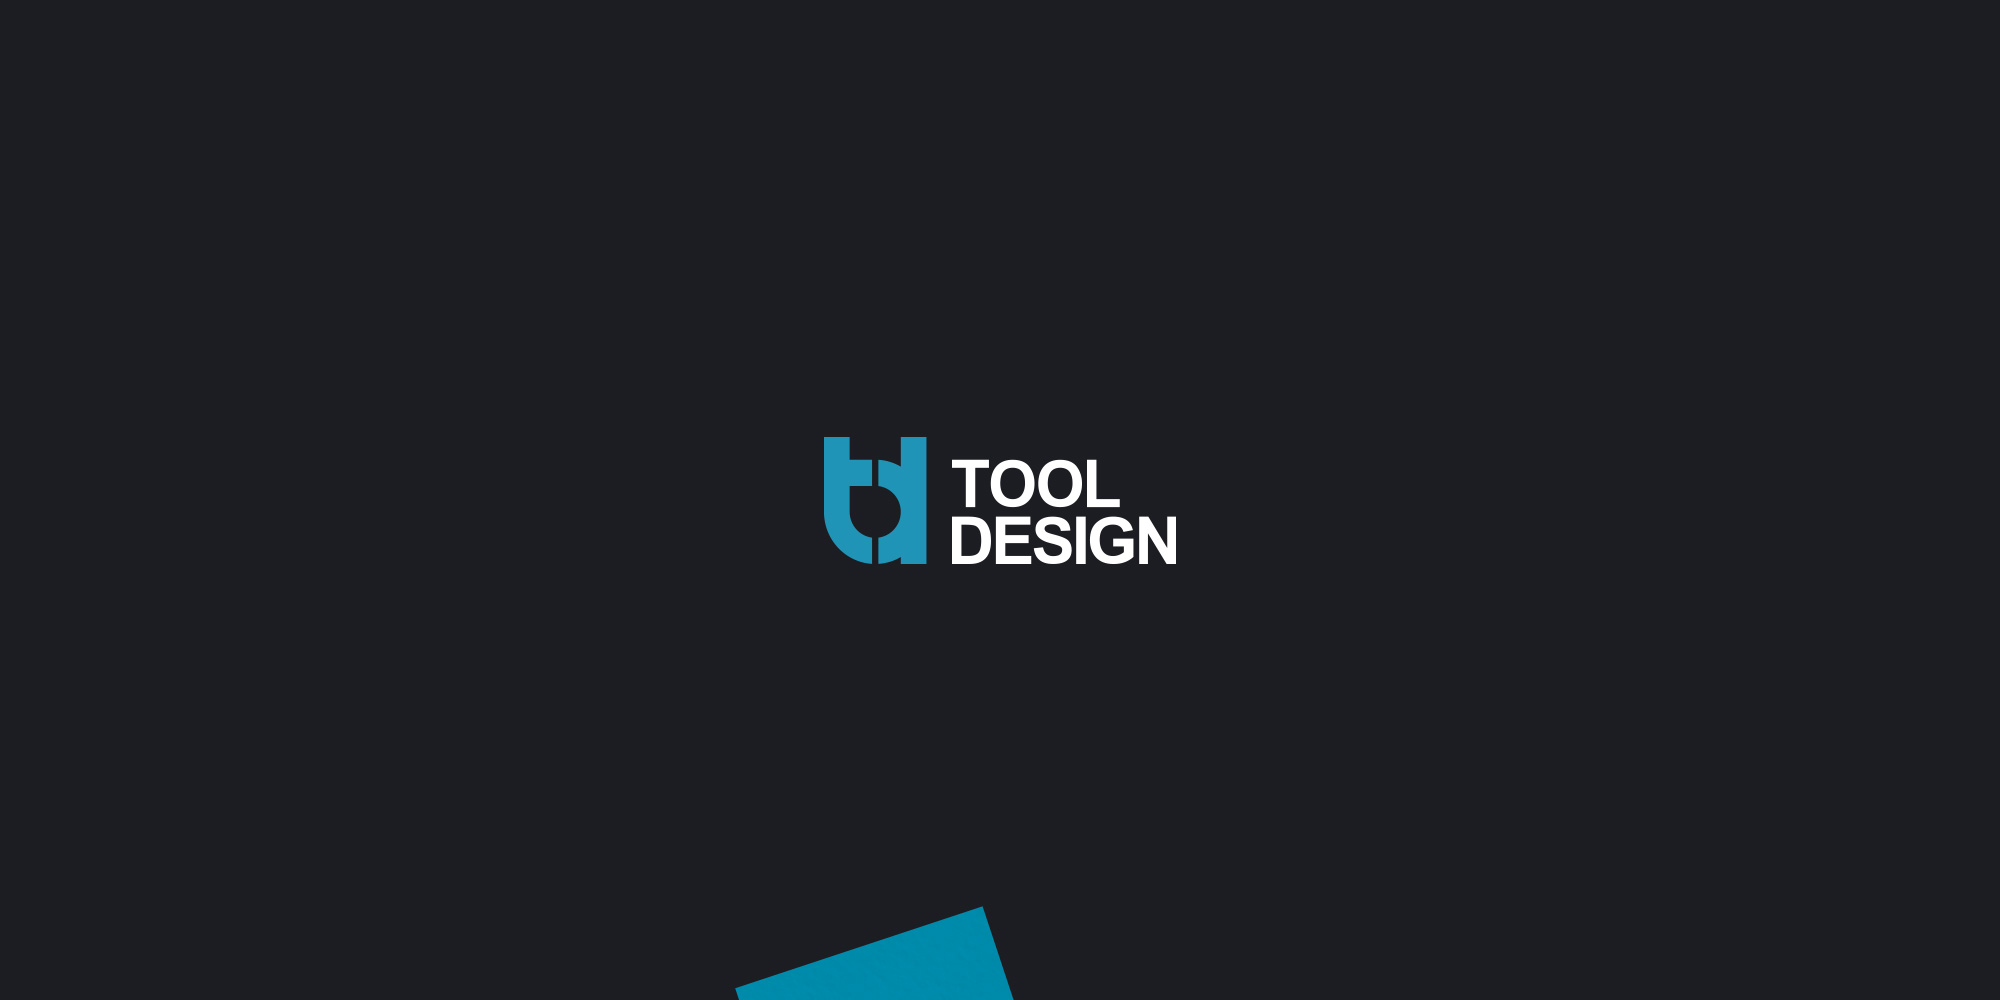 tooldesign_logo.jpg